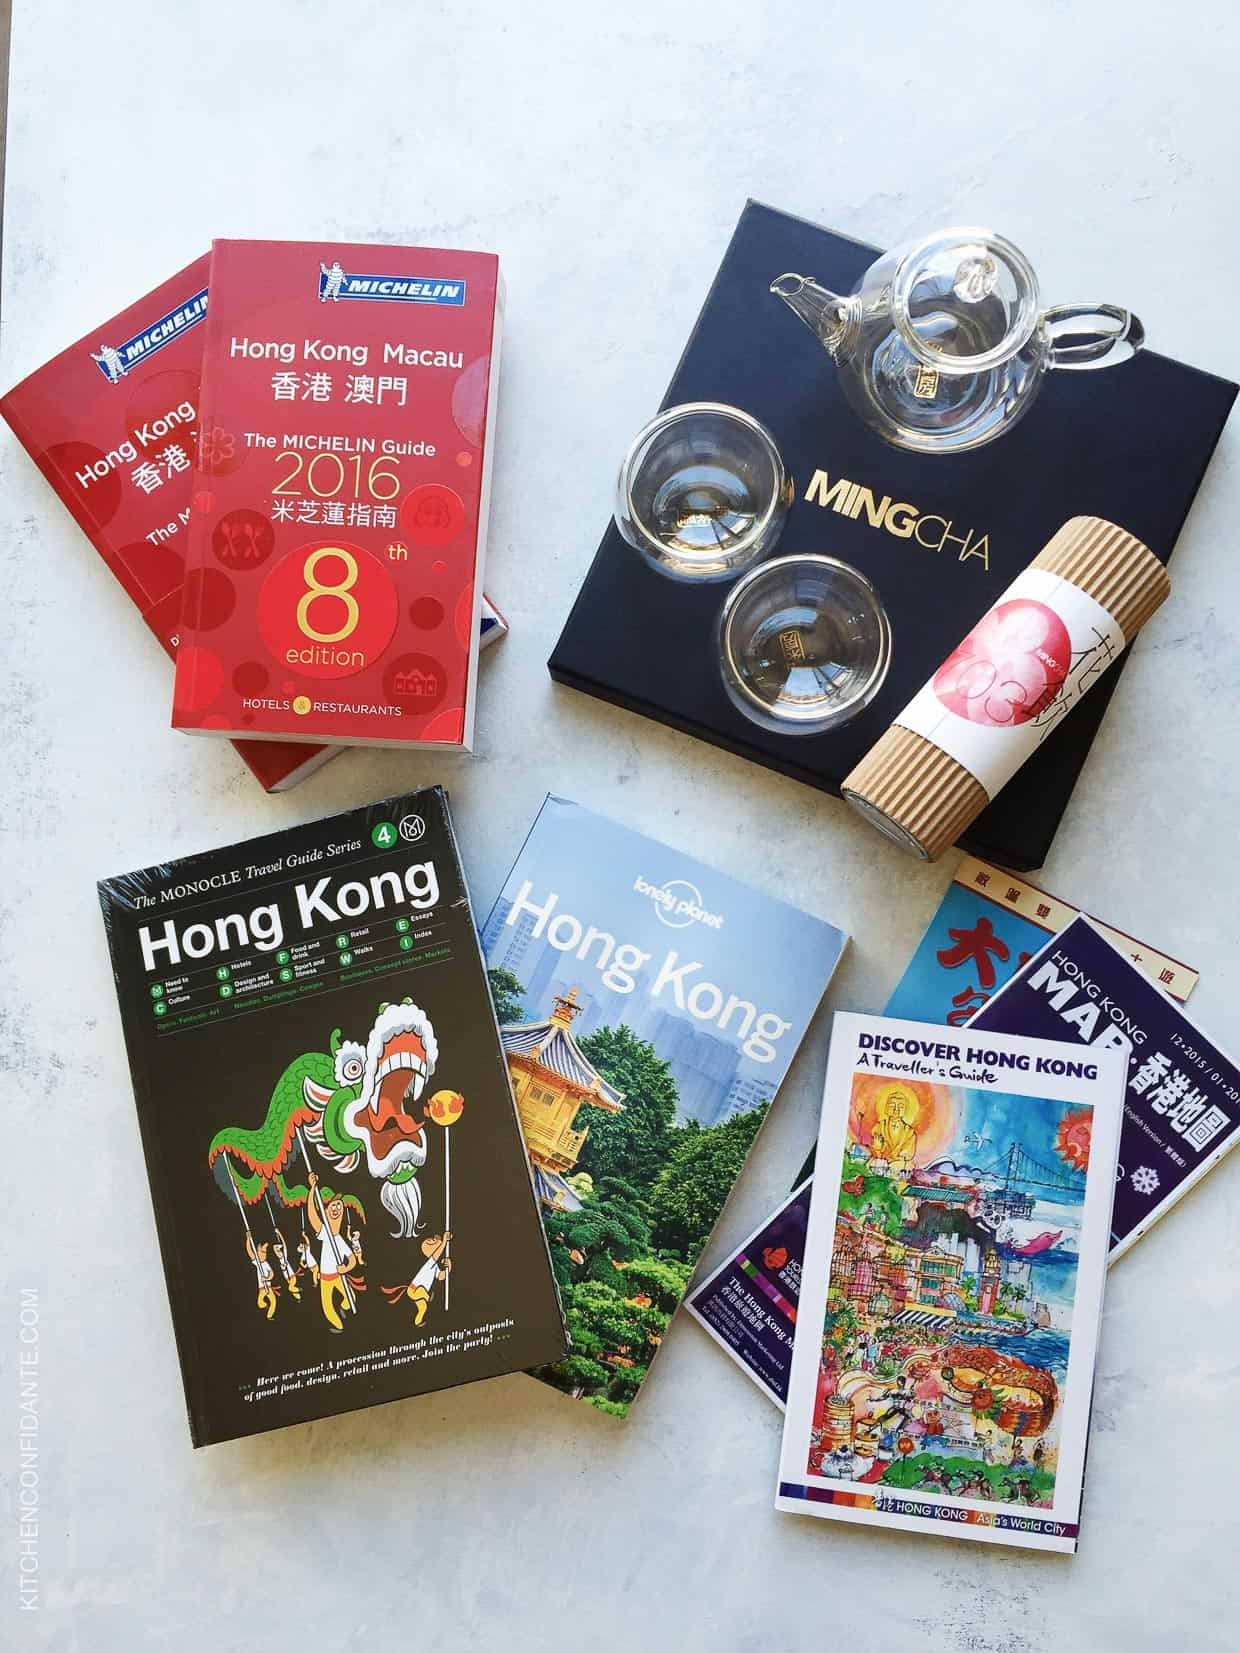 Hong Kong Guidebooks - getting ready to travel.